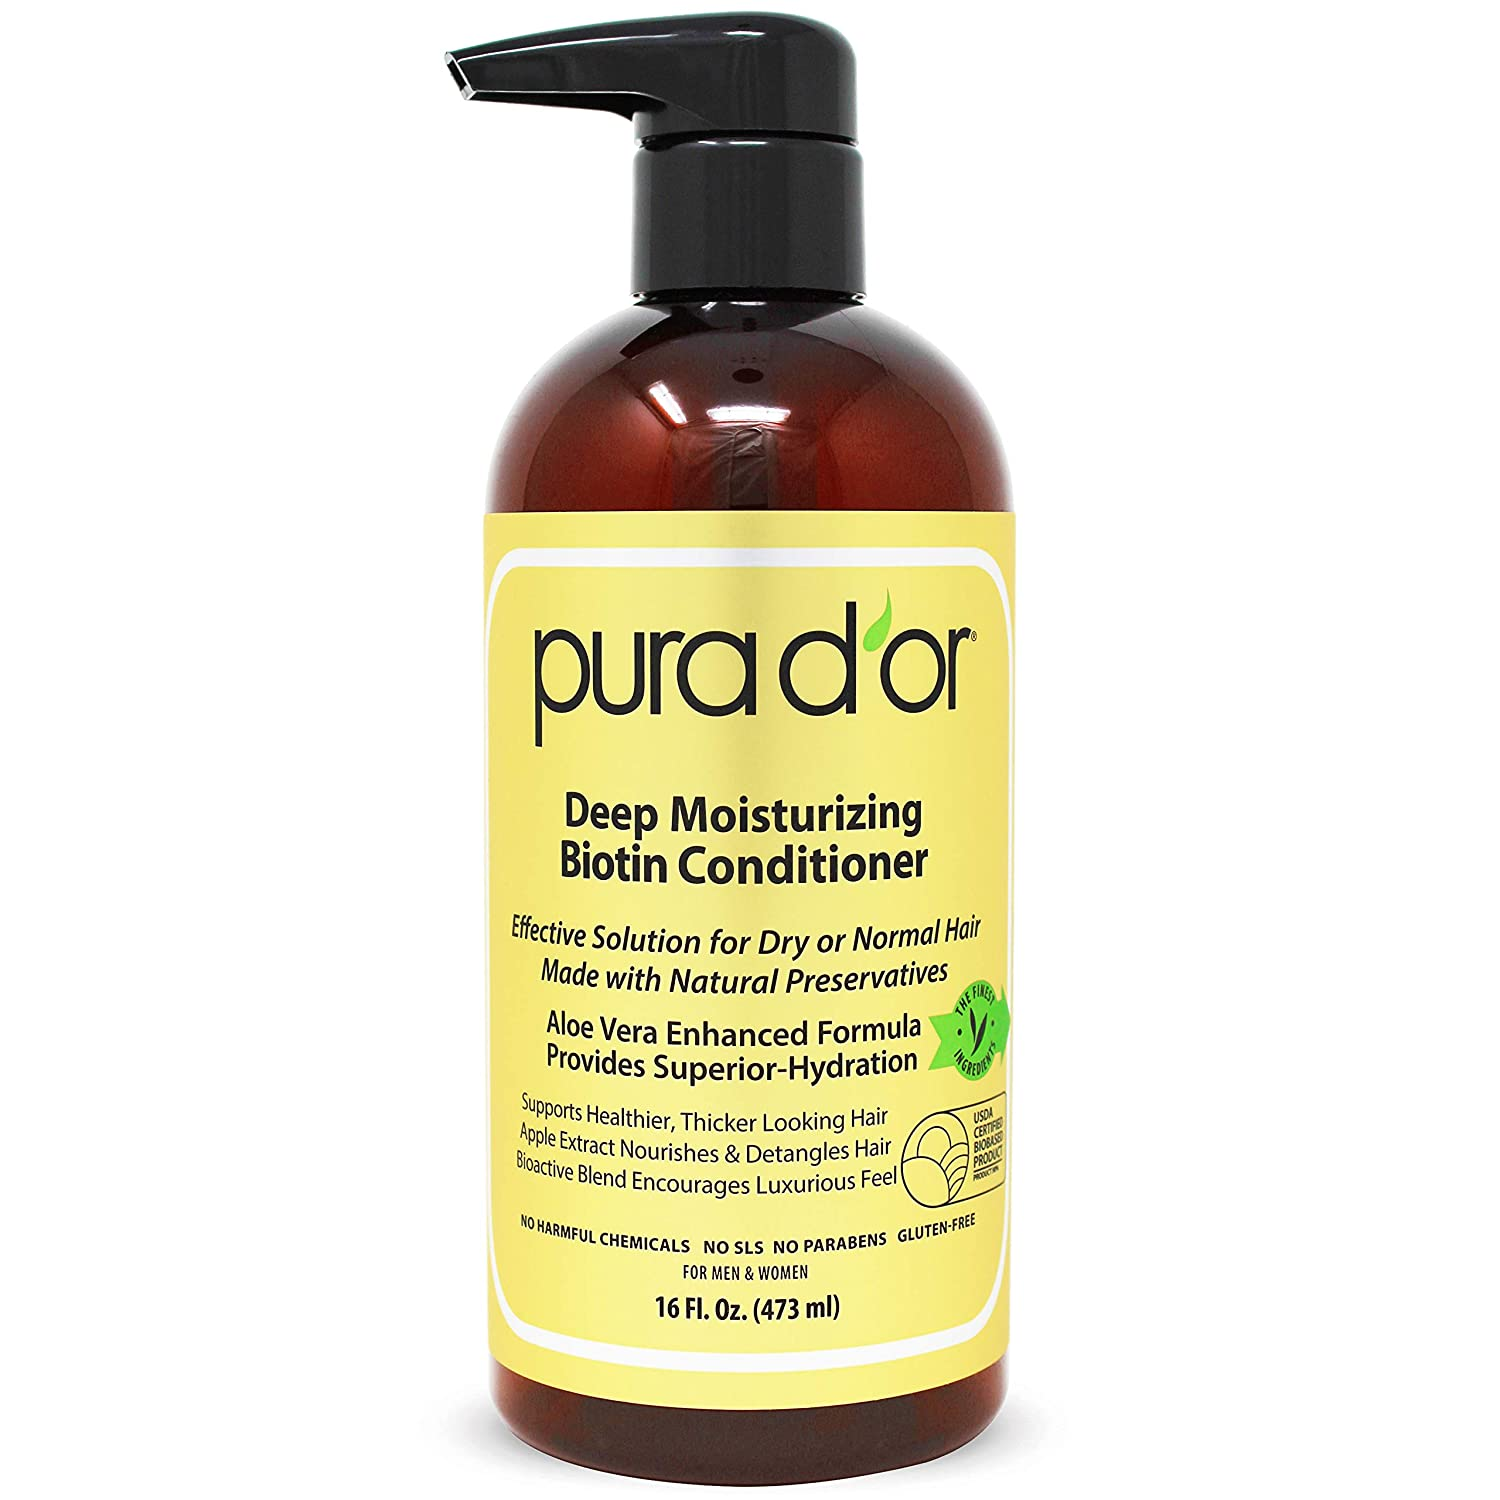 PURA D'OR Deep Moisturizing Conditioner Softens, Smooths, & moisturizes - for Dry, Frizzy, Damaged Hair - Made With Argan Oil & Natural Ingredients, Men & Women, 16 Fl Oz (Packaging May Vary)